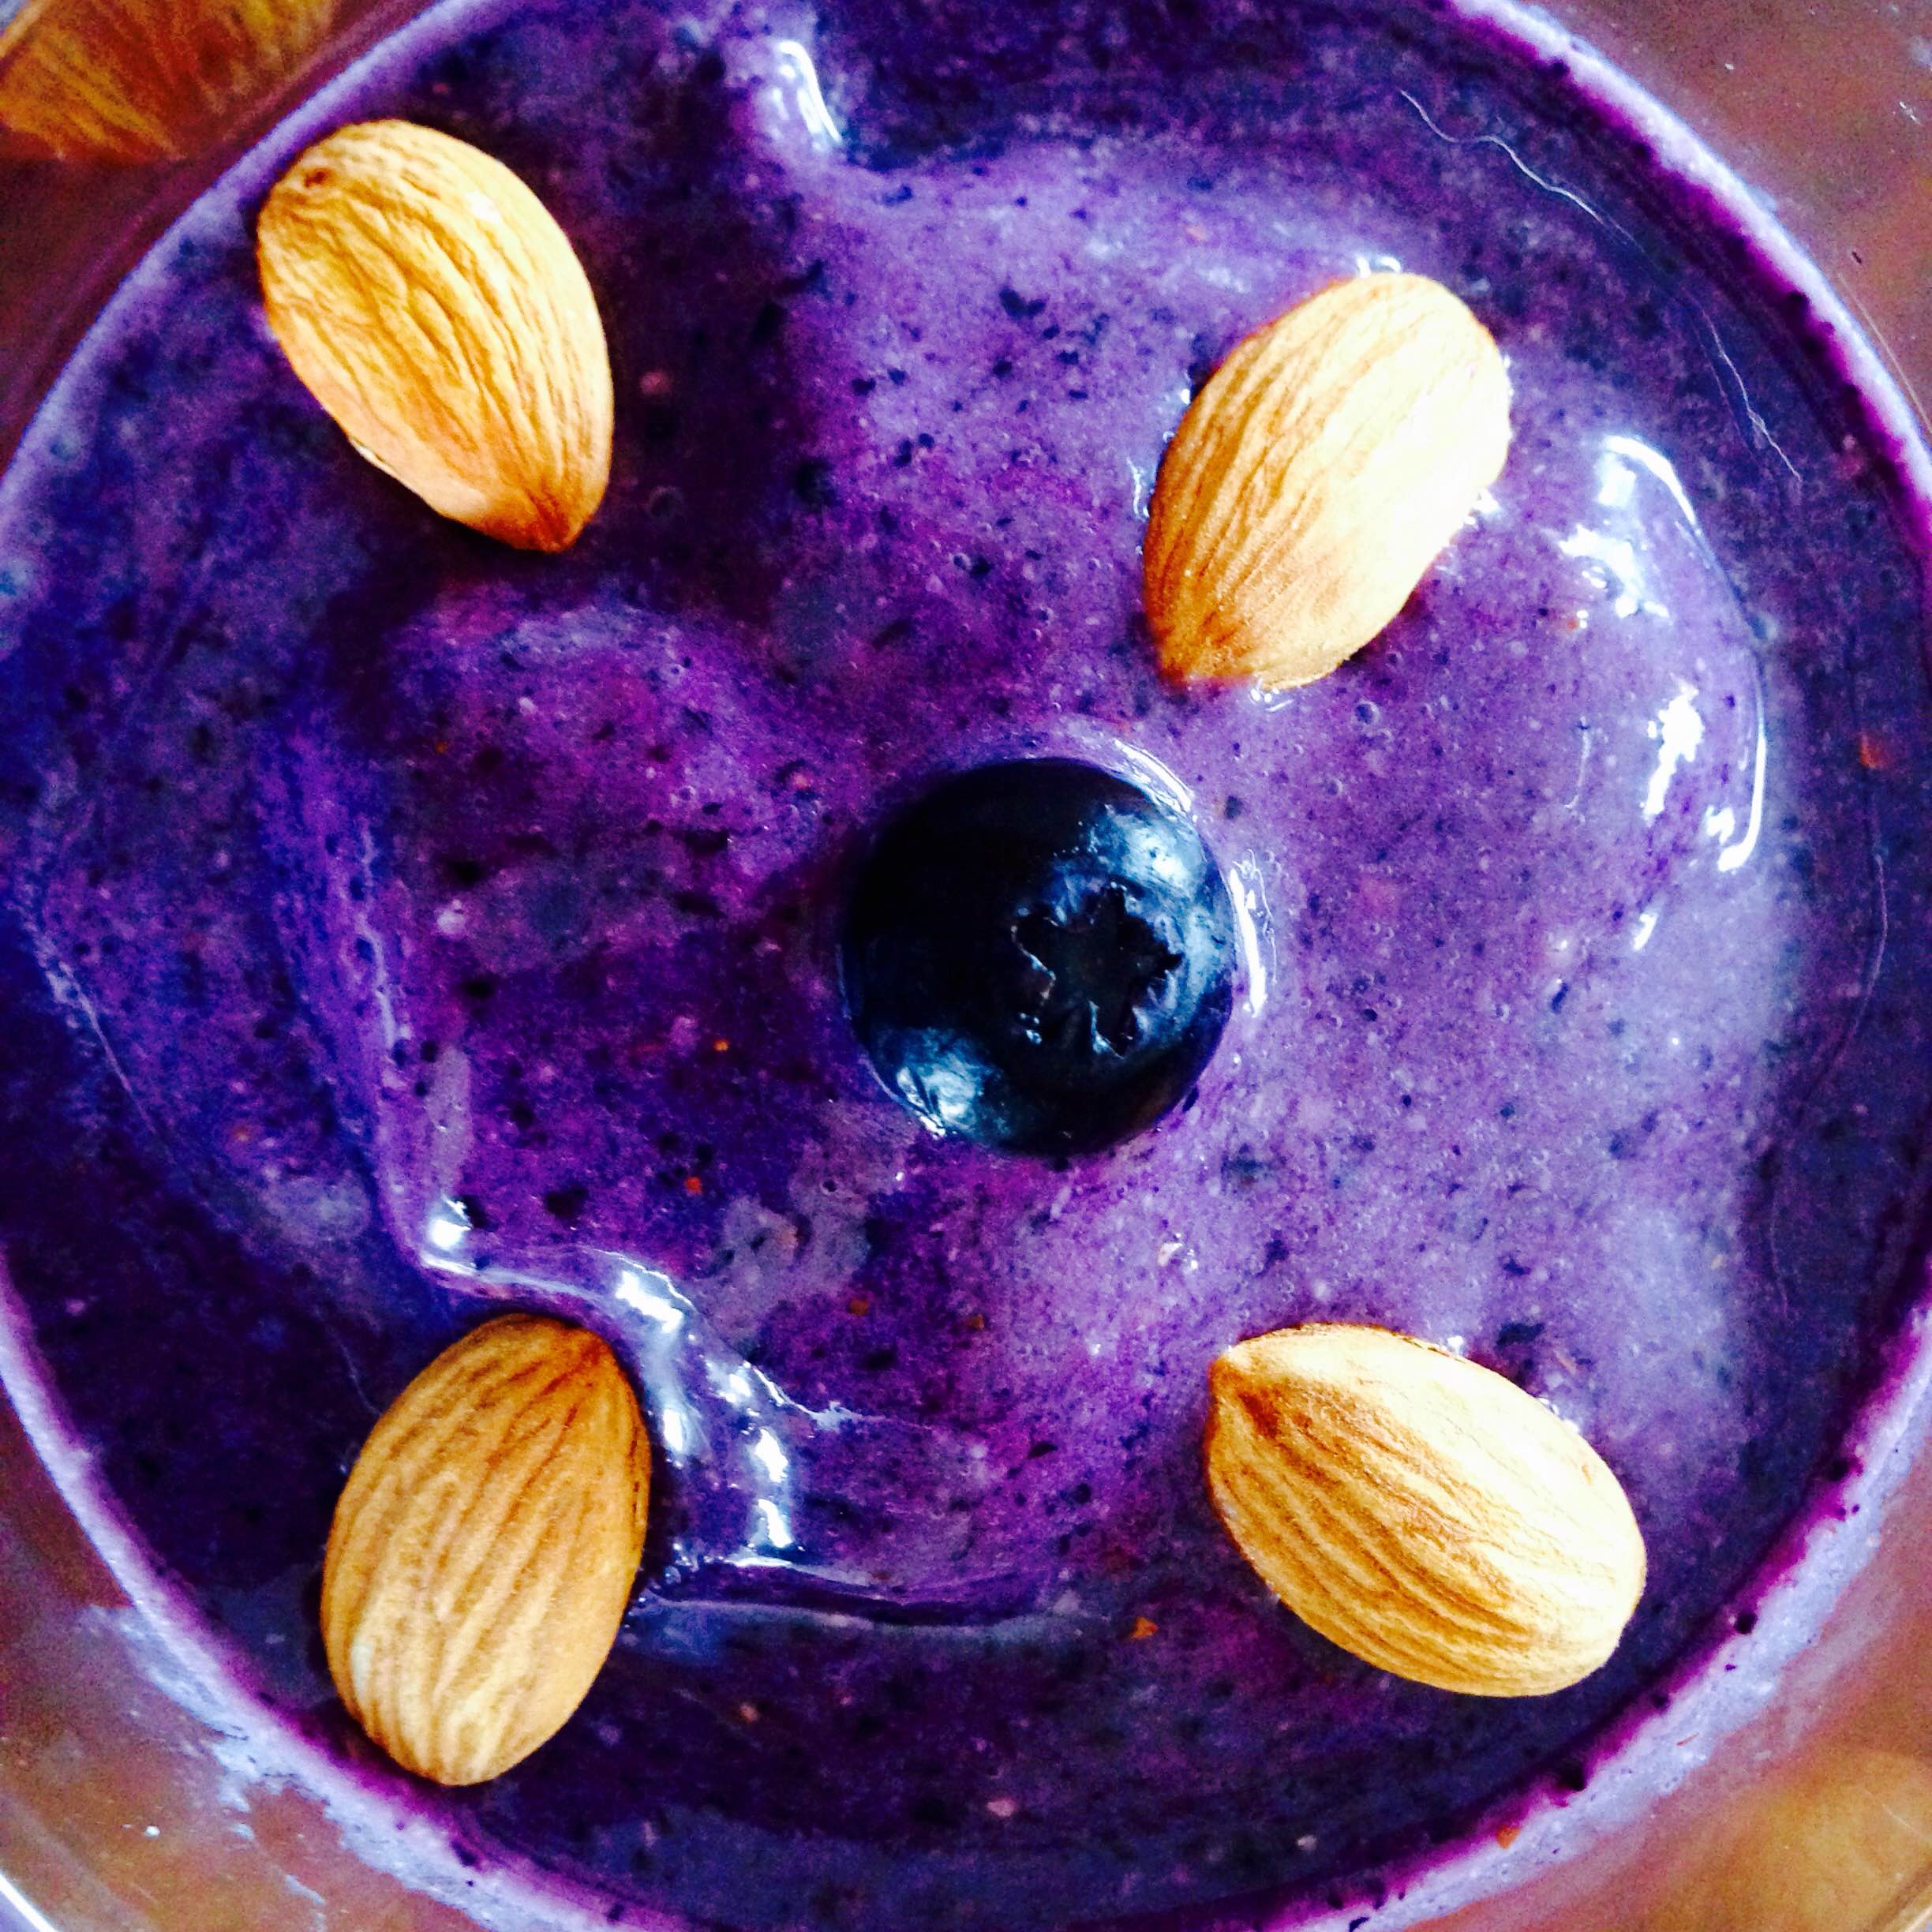 Blueberry and almond smoothie